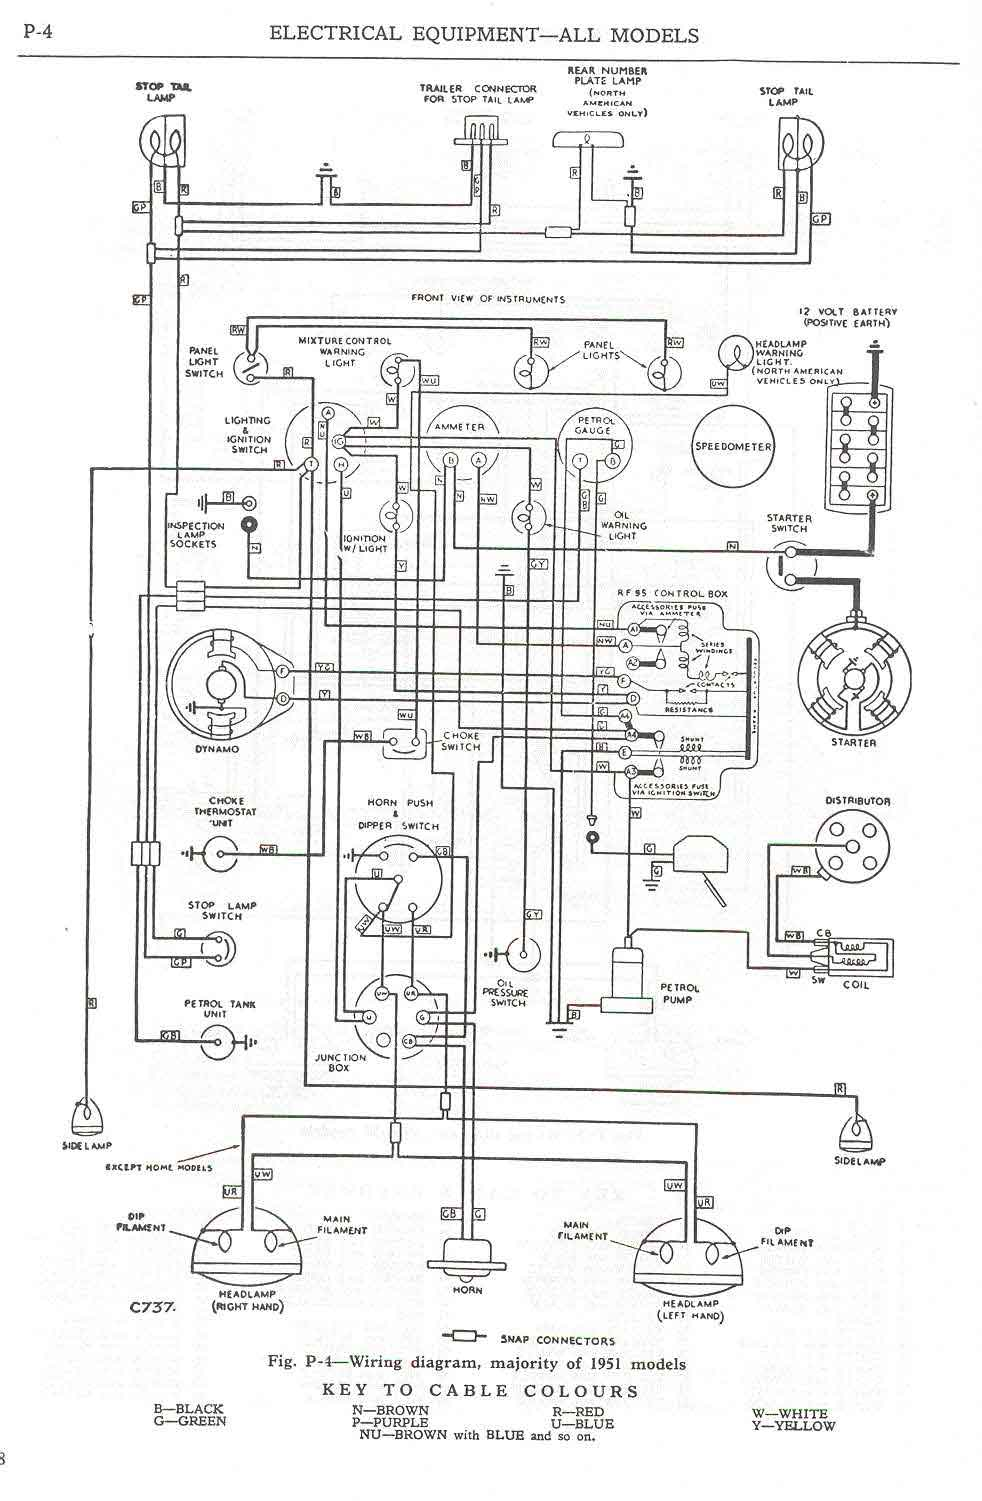 Land Rover Discovery 1 Electrical Wiring Diagram : Land rover faq repair maintenance series